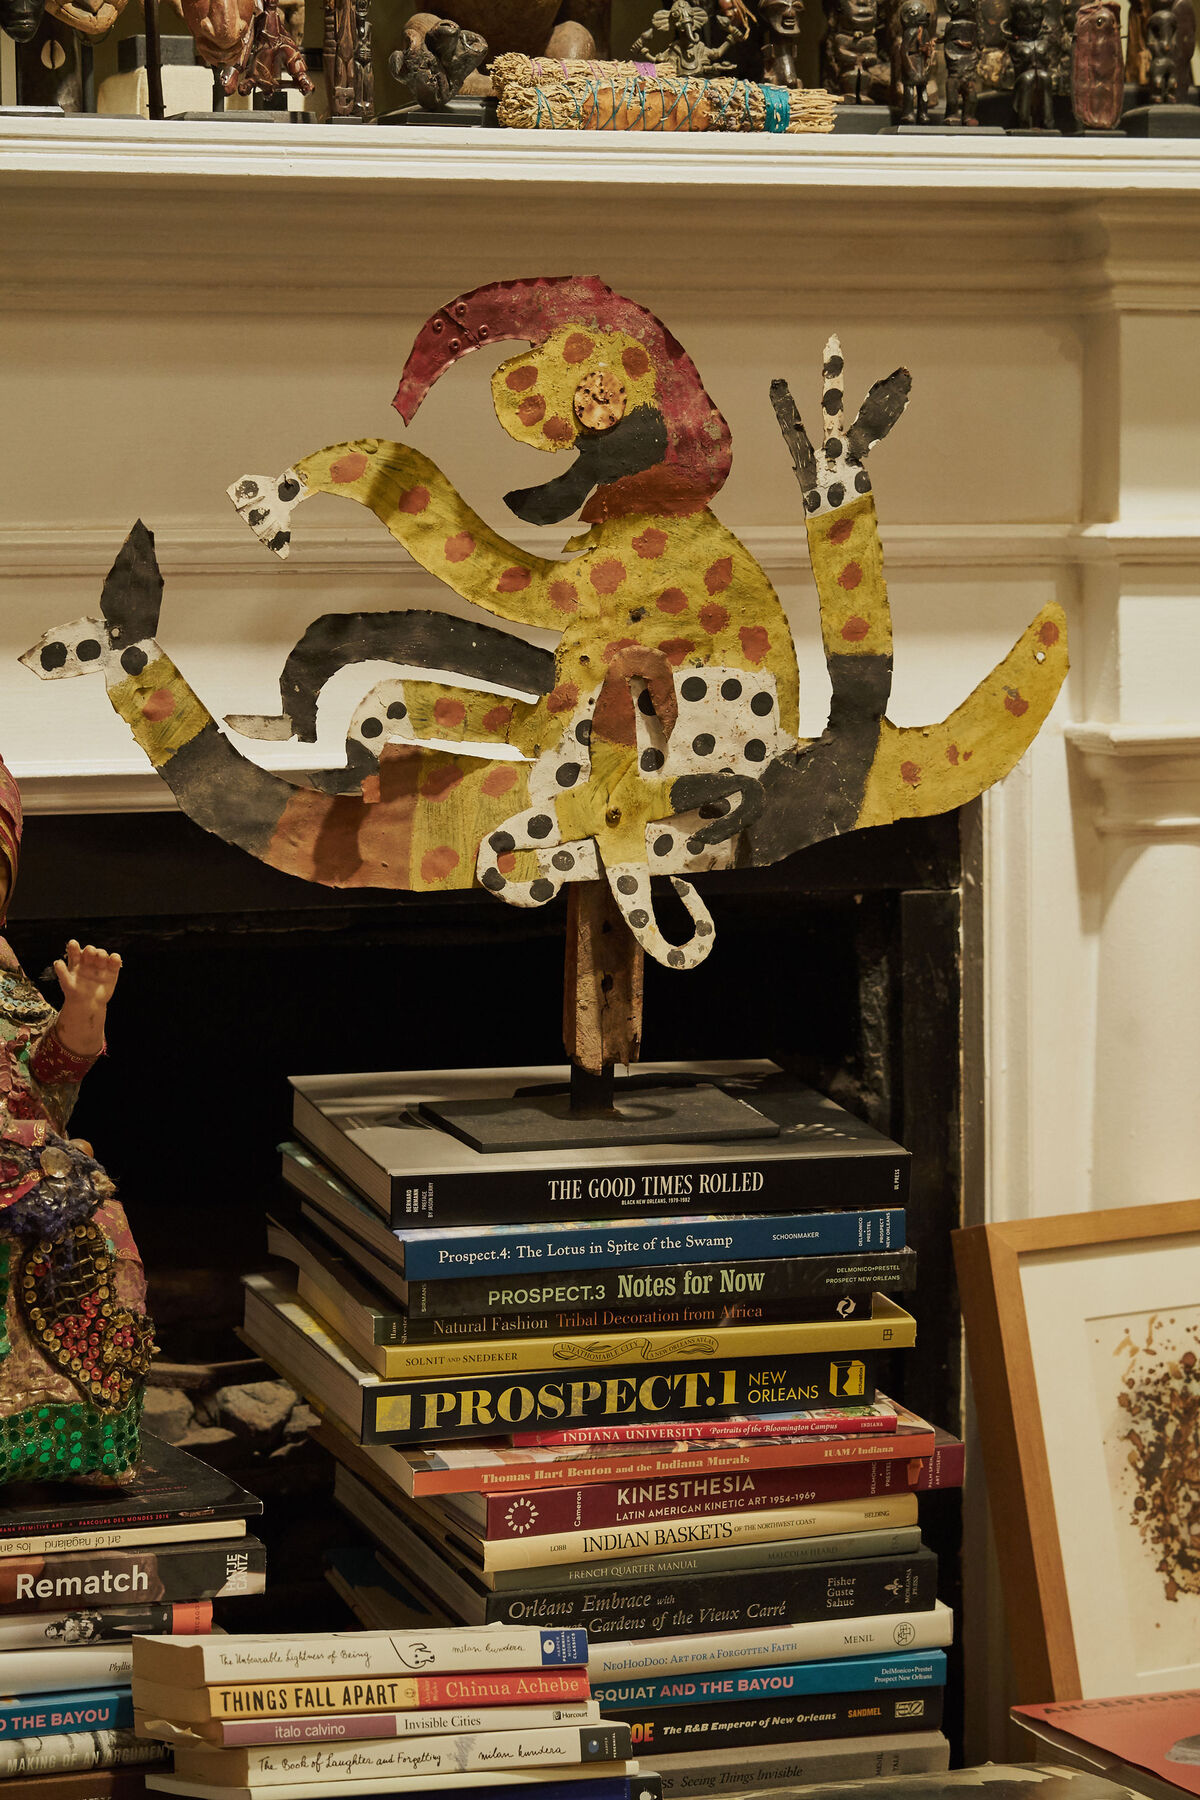 A sculpture by David Butler sits on top of a stack of books in William Fagaly's living room. In 1976, Fagaly curated the first exhibition of Butler's work at NOMA. Photo by Michael Adno for Artsy.